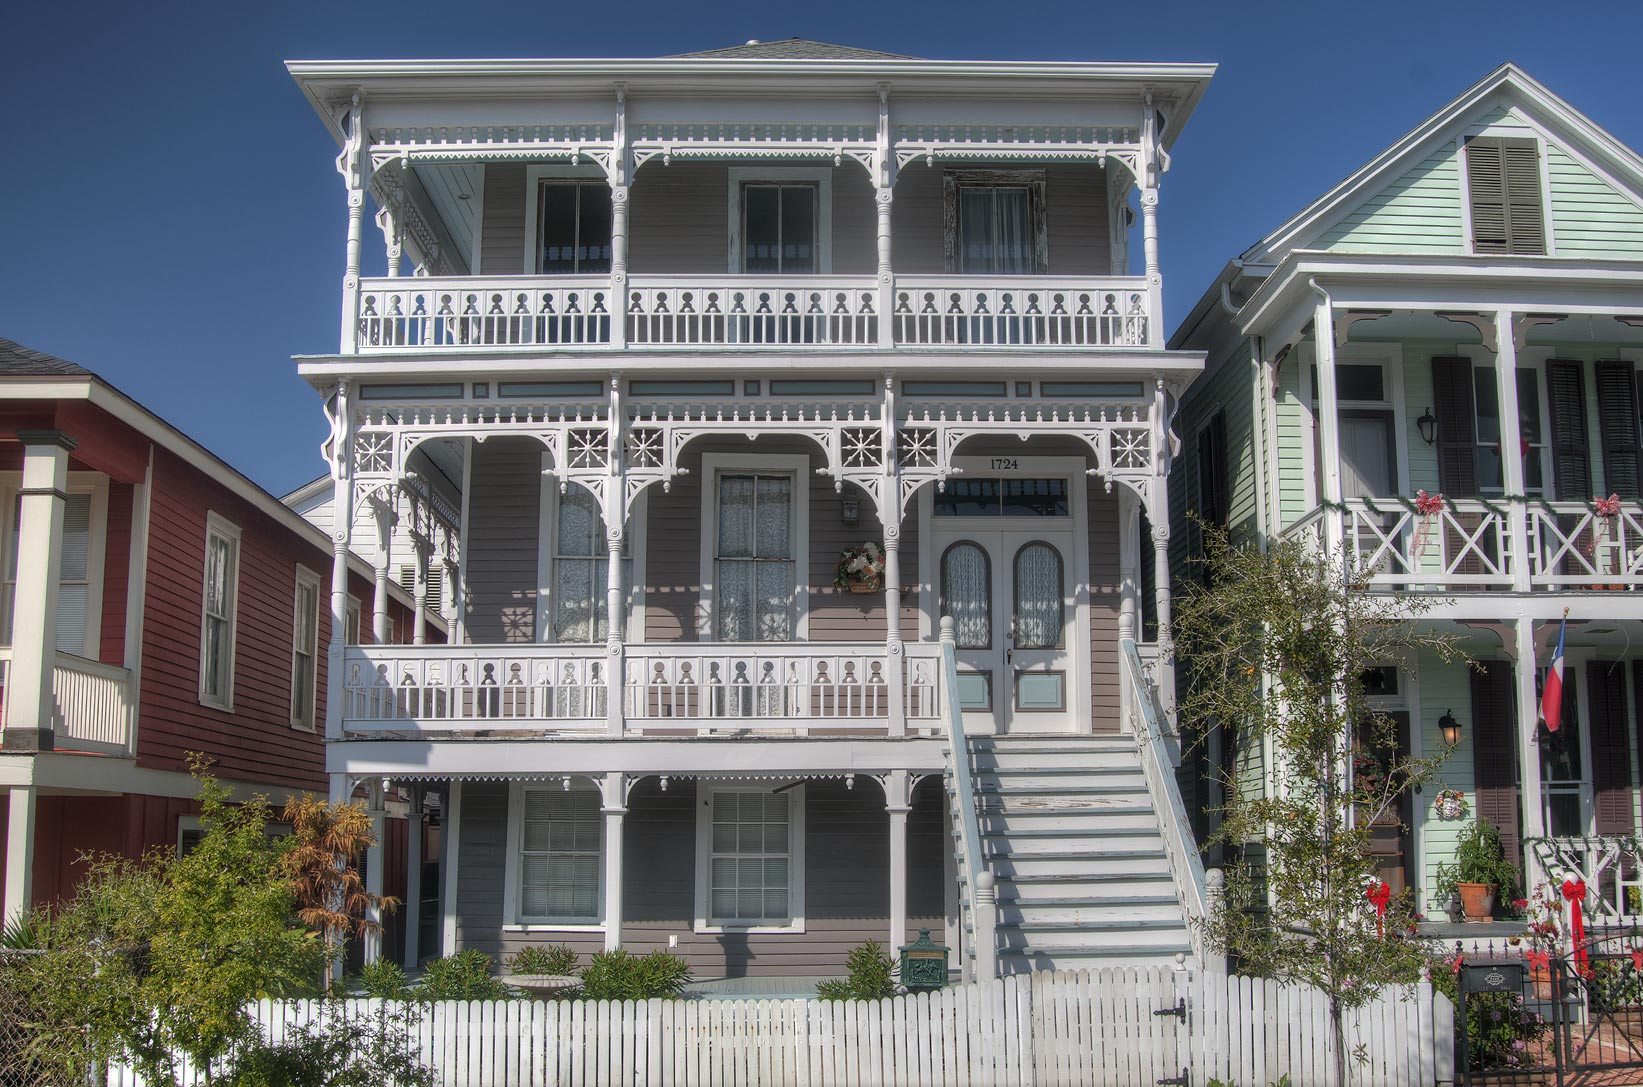 House on Ball Street in East End Historic District. Galveston, Texas